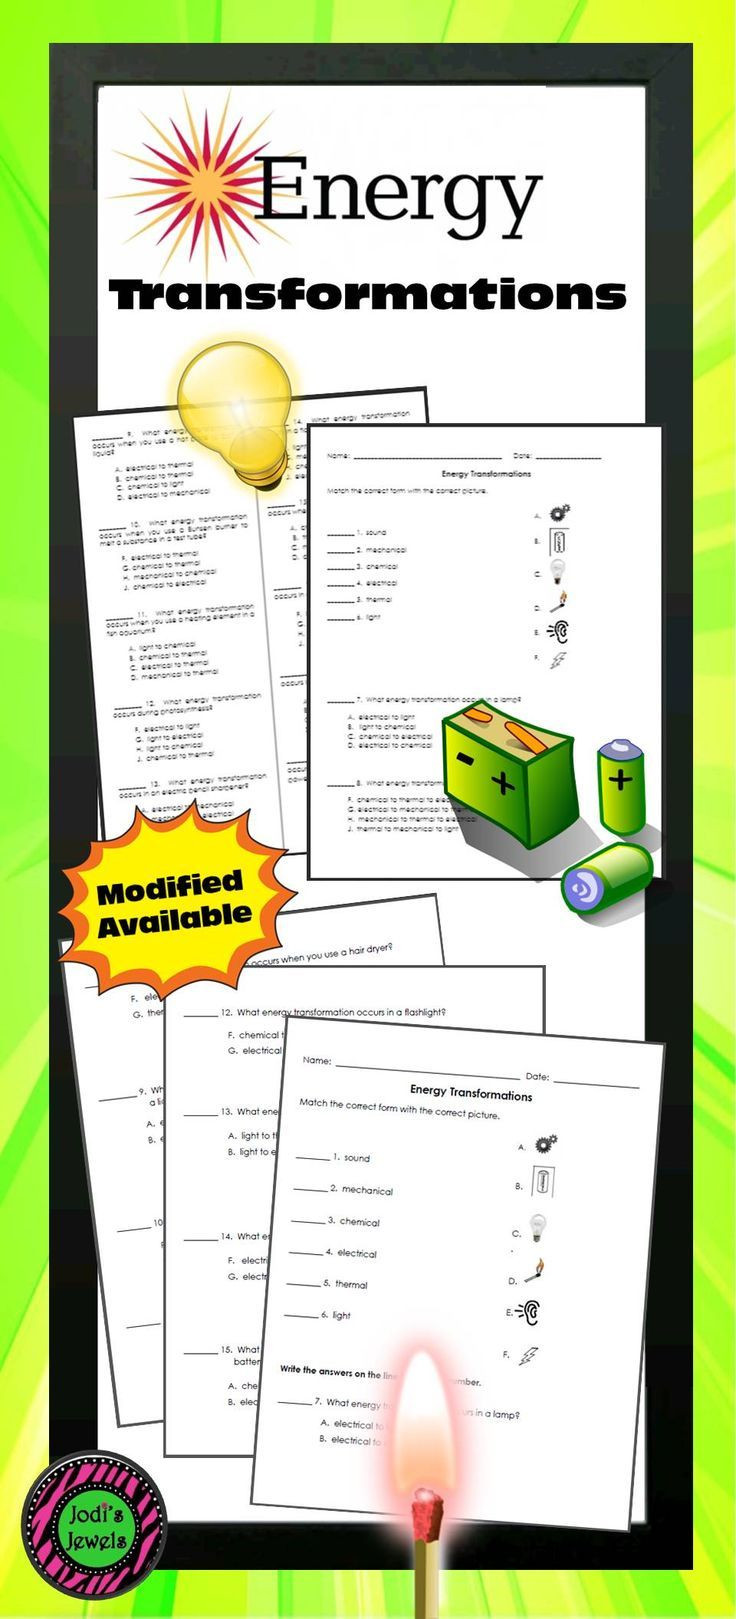 Energy Transformation Worksheets Middle School Students Will Practice Types Of Energy Transformations